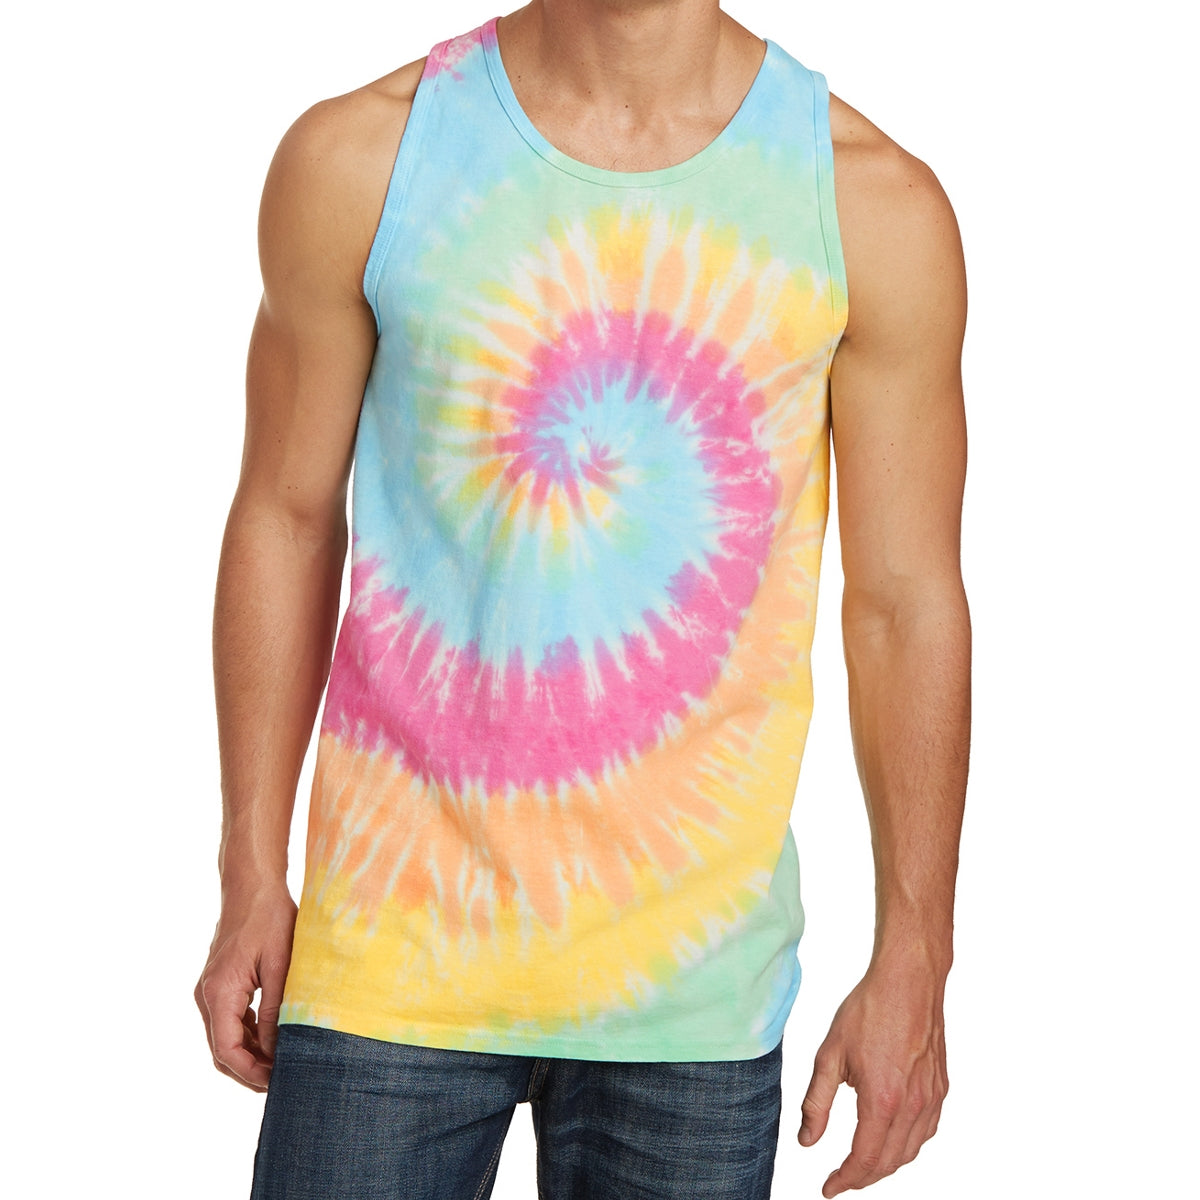 Men's Tie-Dye Tank Top - Pastel Rainbow